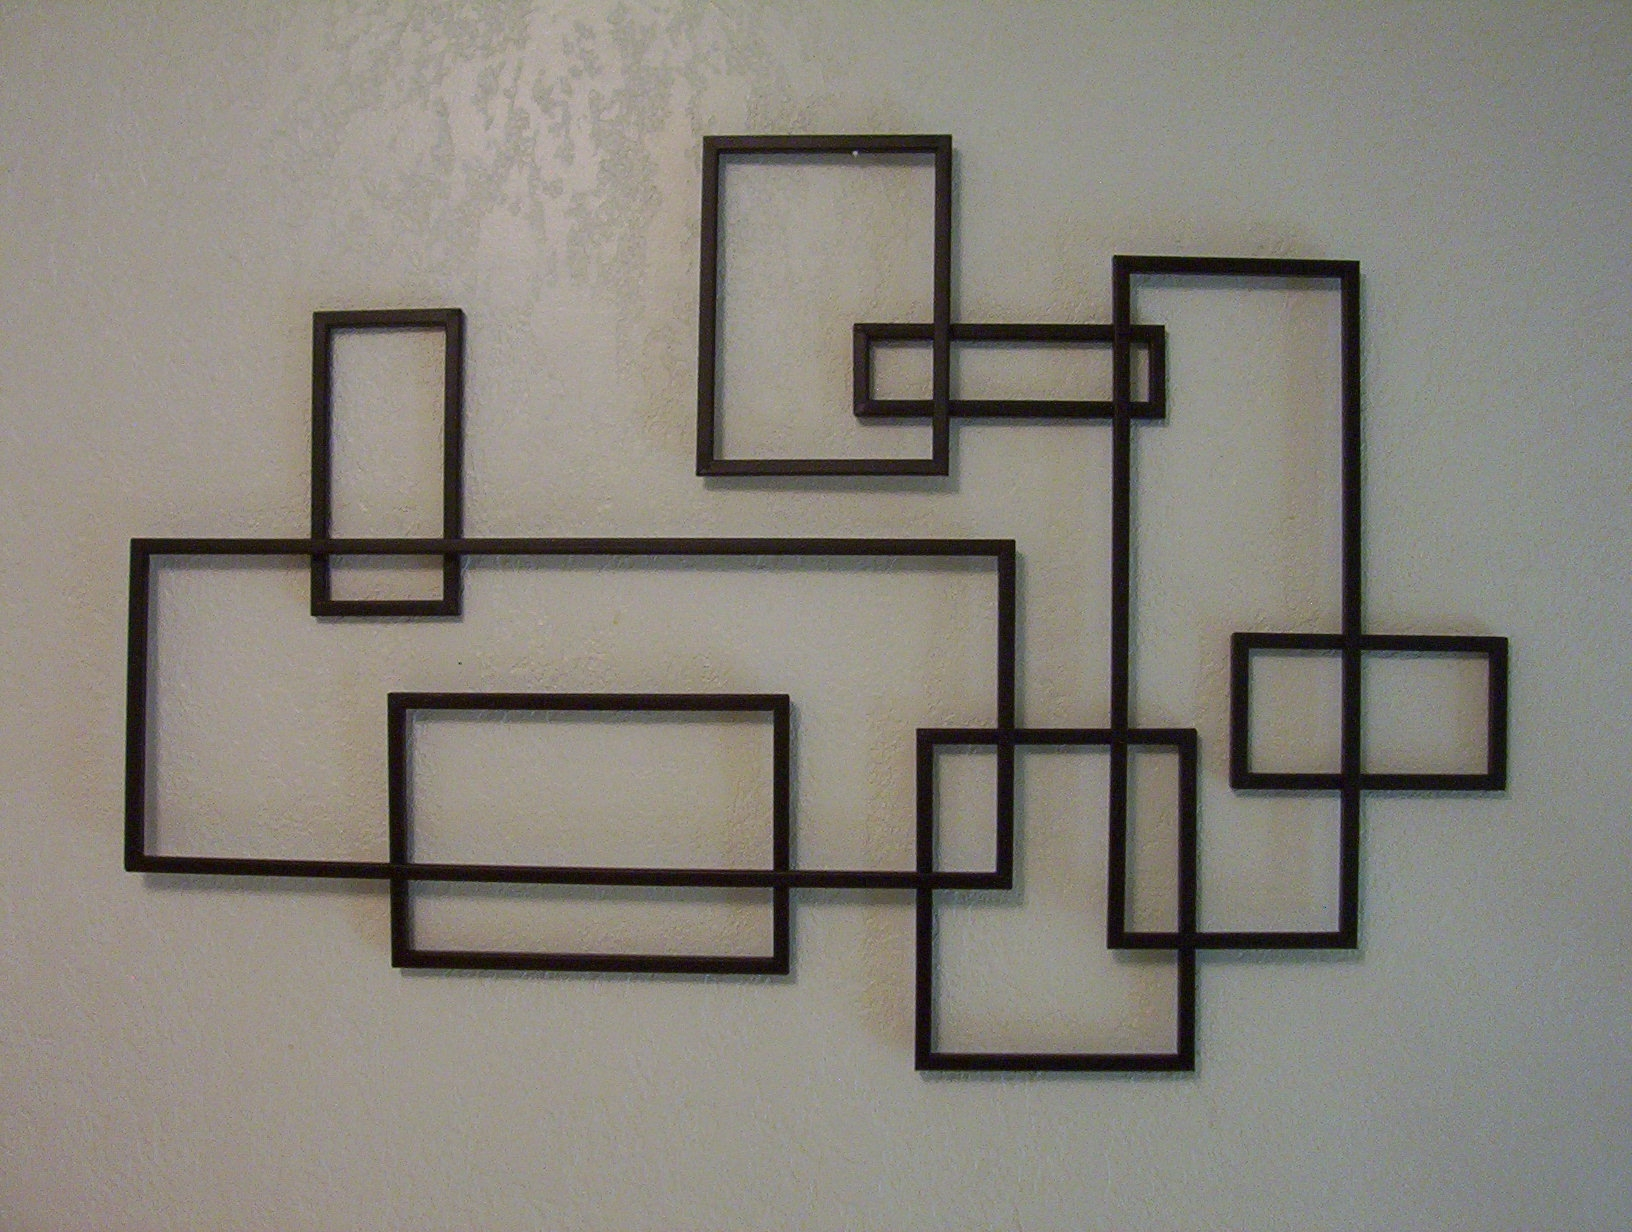 Favorite Cheap Contemporary Wall Art Throughout Innovative Way Modern Wall Decor Room — Joanne Russo Homesjoanne (View 11 of 15)